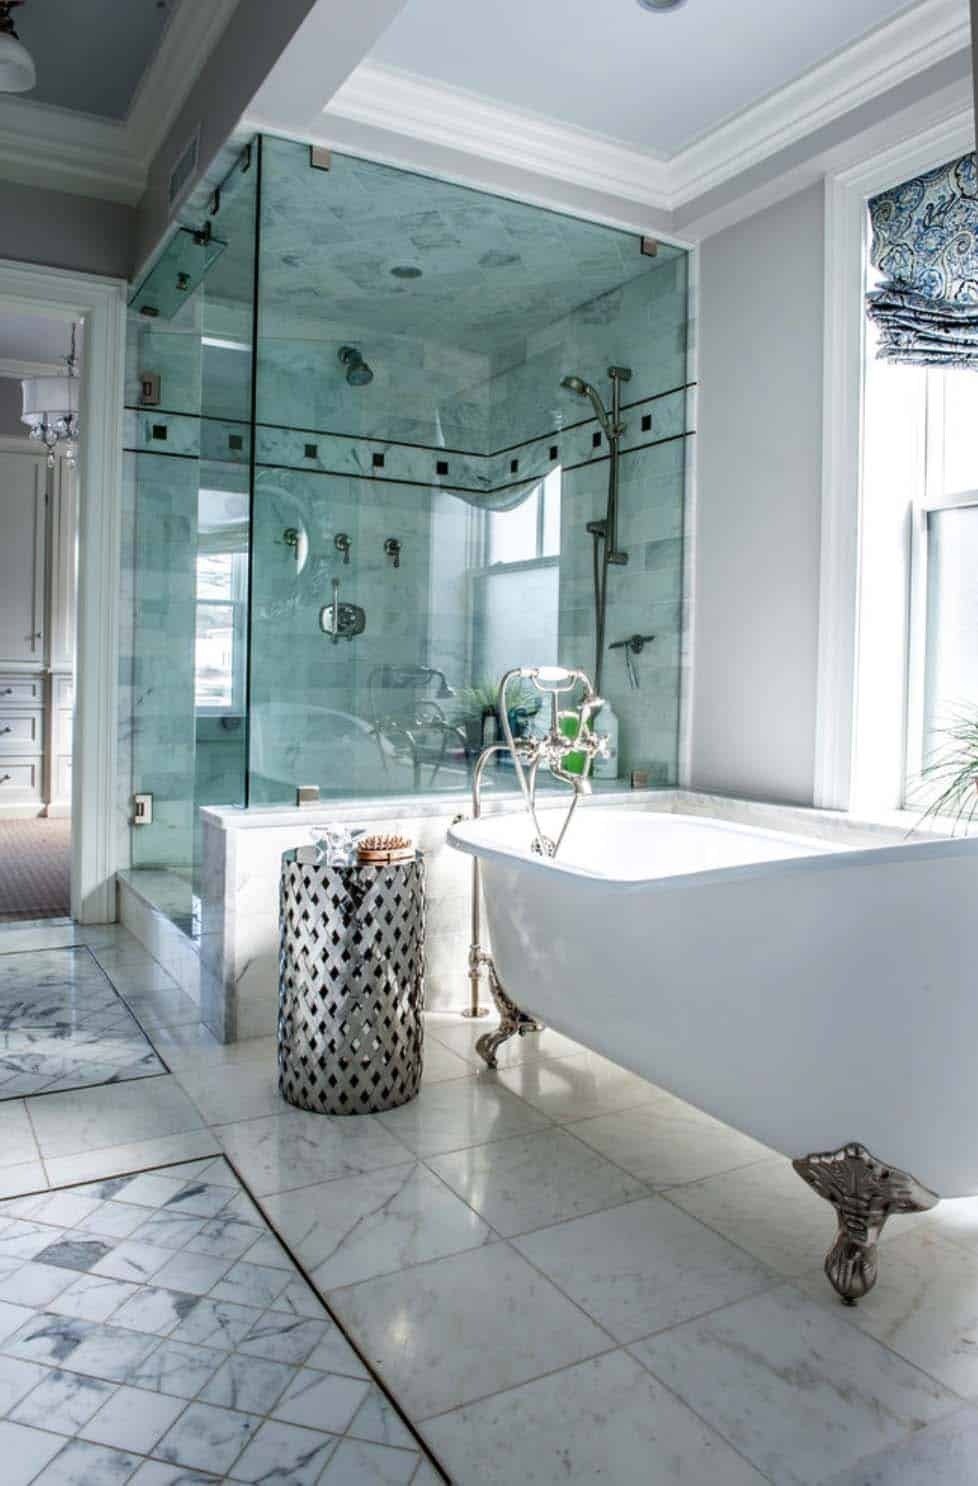 53 Most fabulous traditional style bathroom designs ever on Bathroom Remodel Design Ideas  id=20011